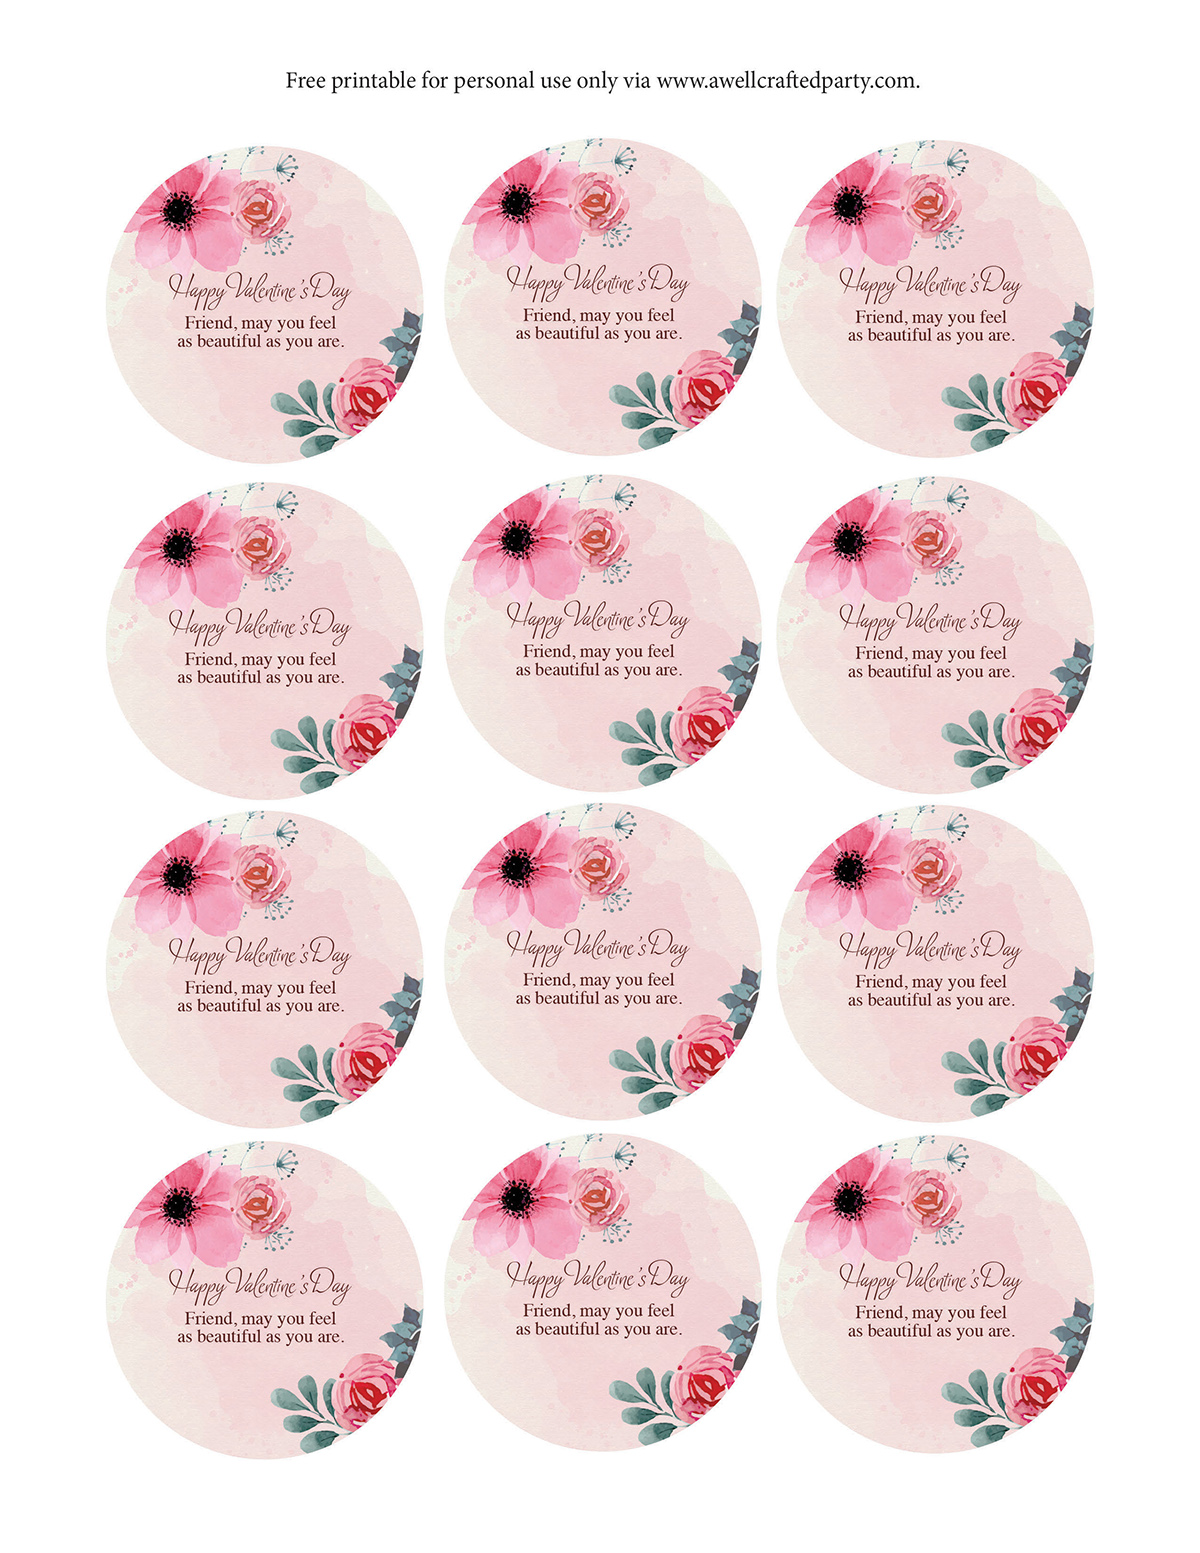 Free Printable Valentine's Day Gift Tags - A Well Crafted Party